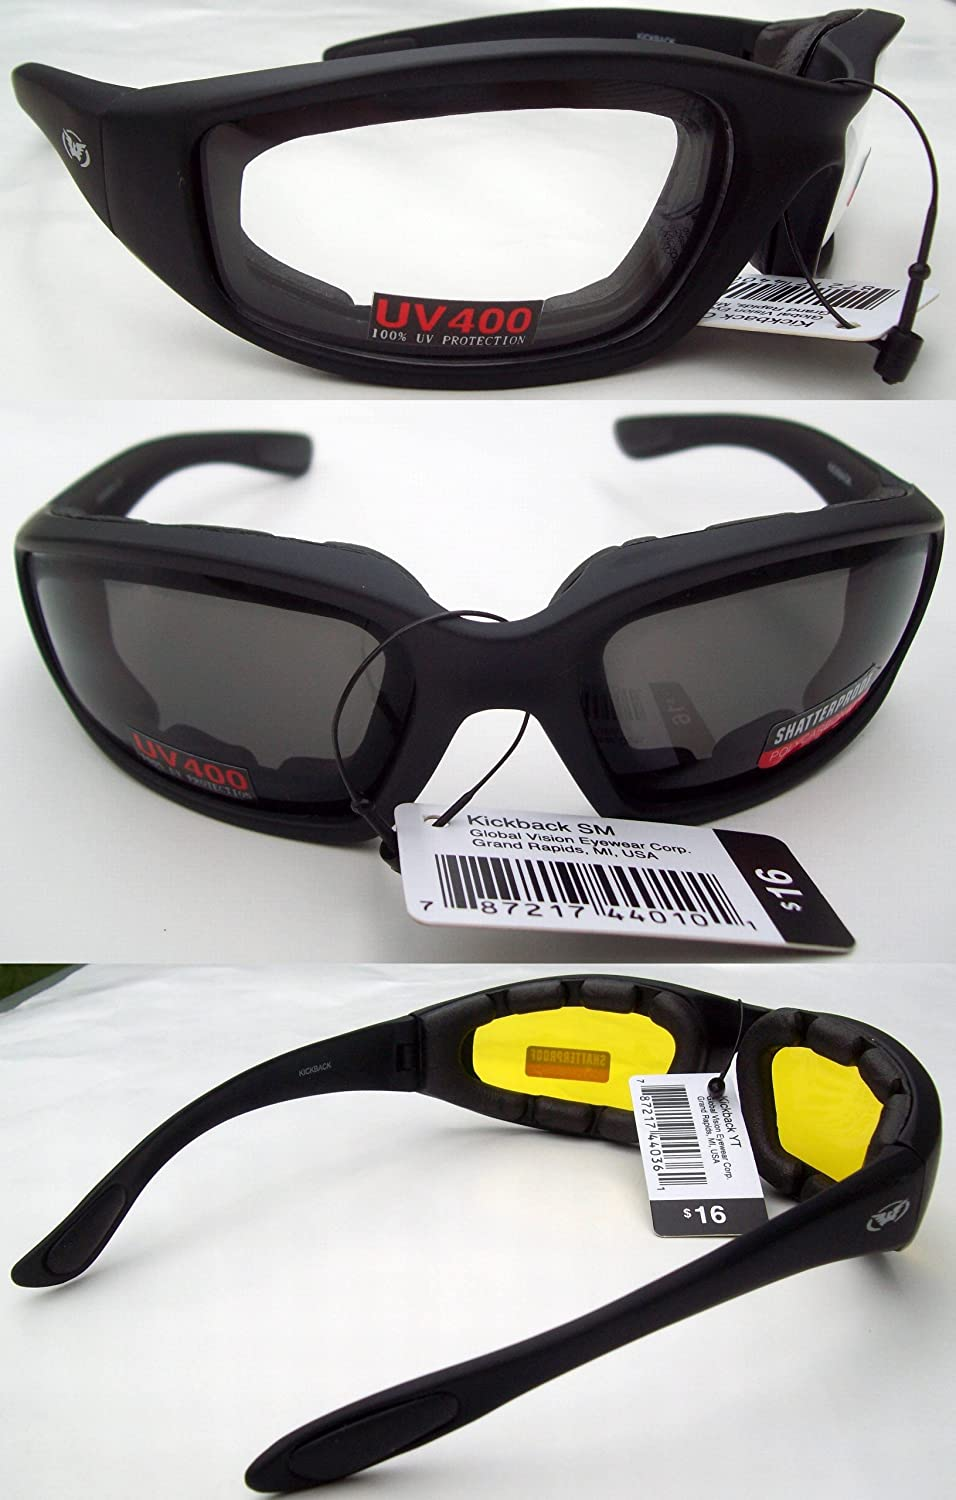 3 Pairs: Padded Motorcycle Glasses Sunglasses Smoke Clear Yellow + Storage Bags GV